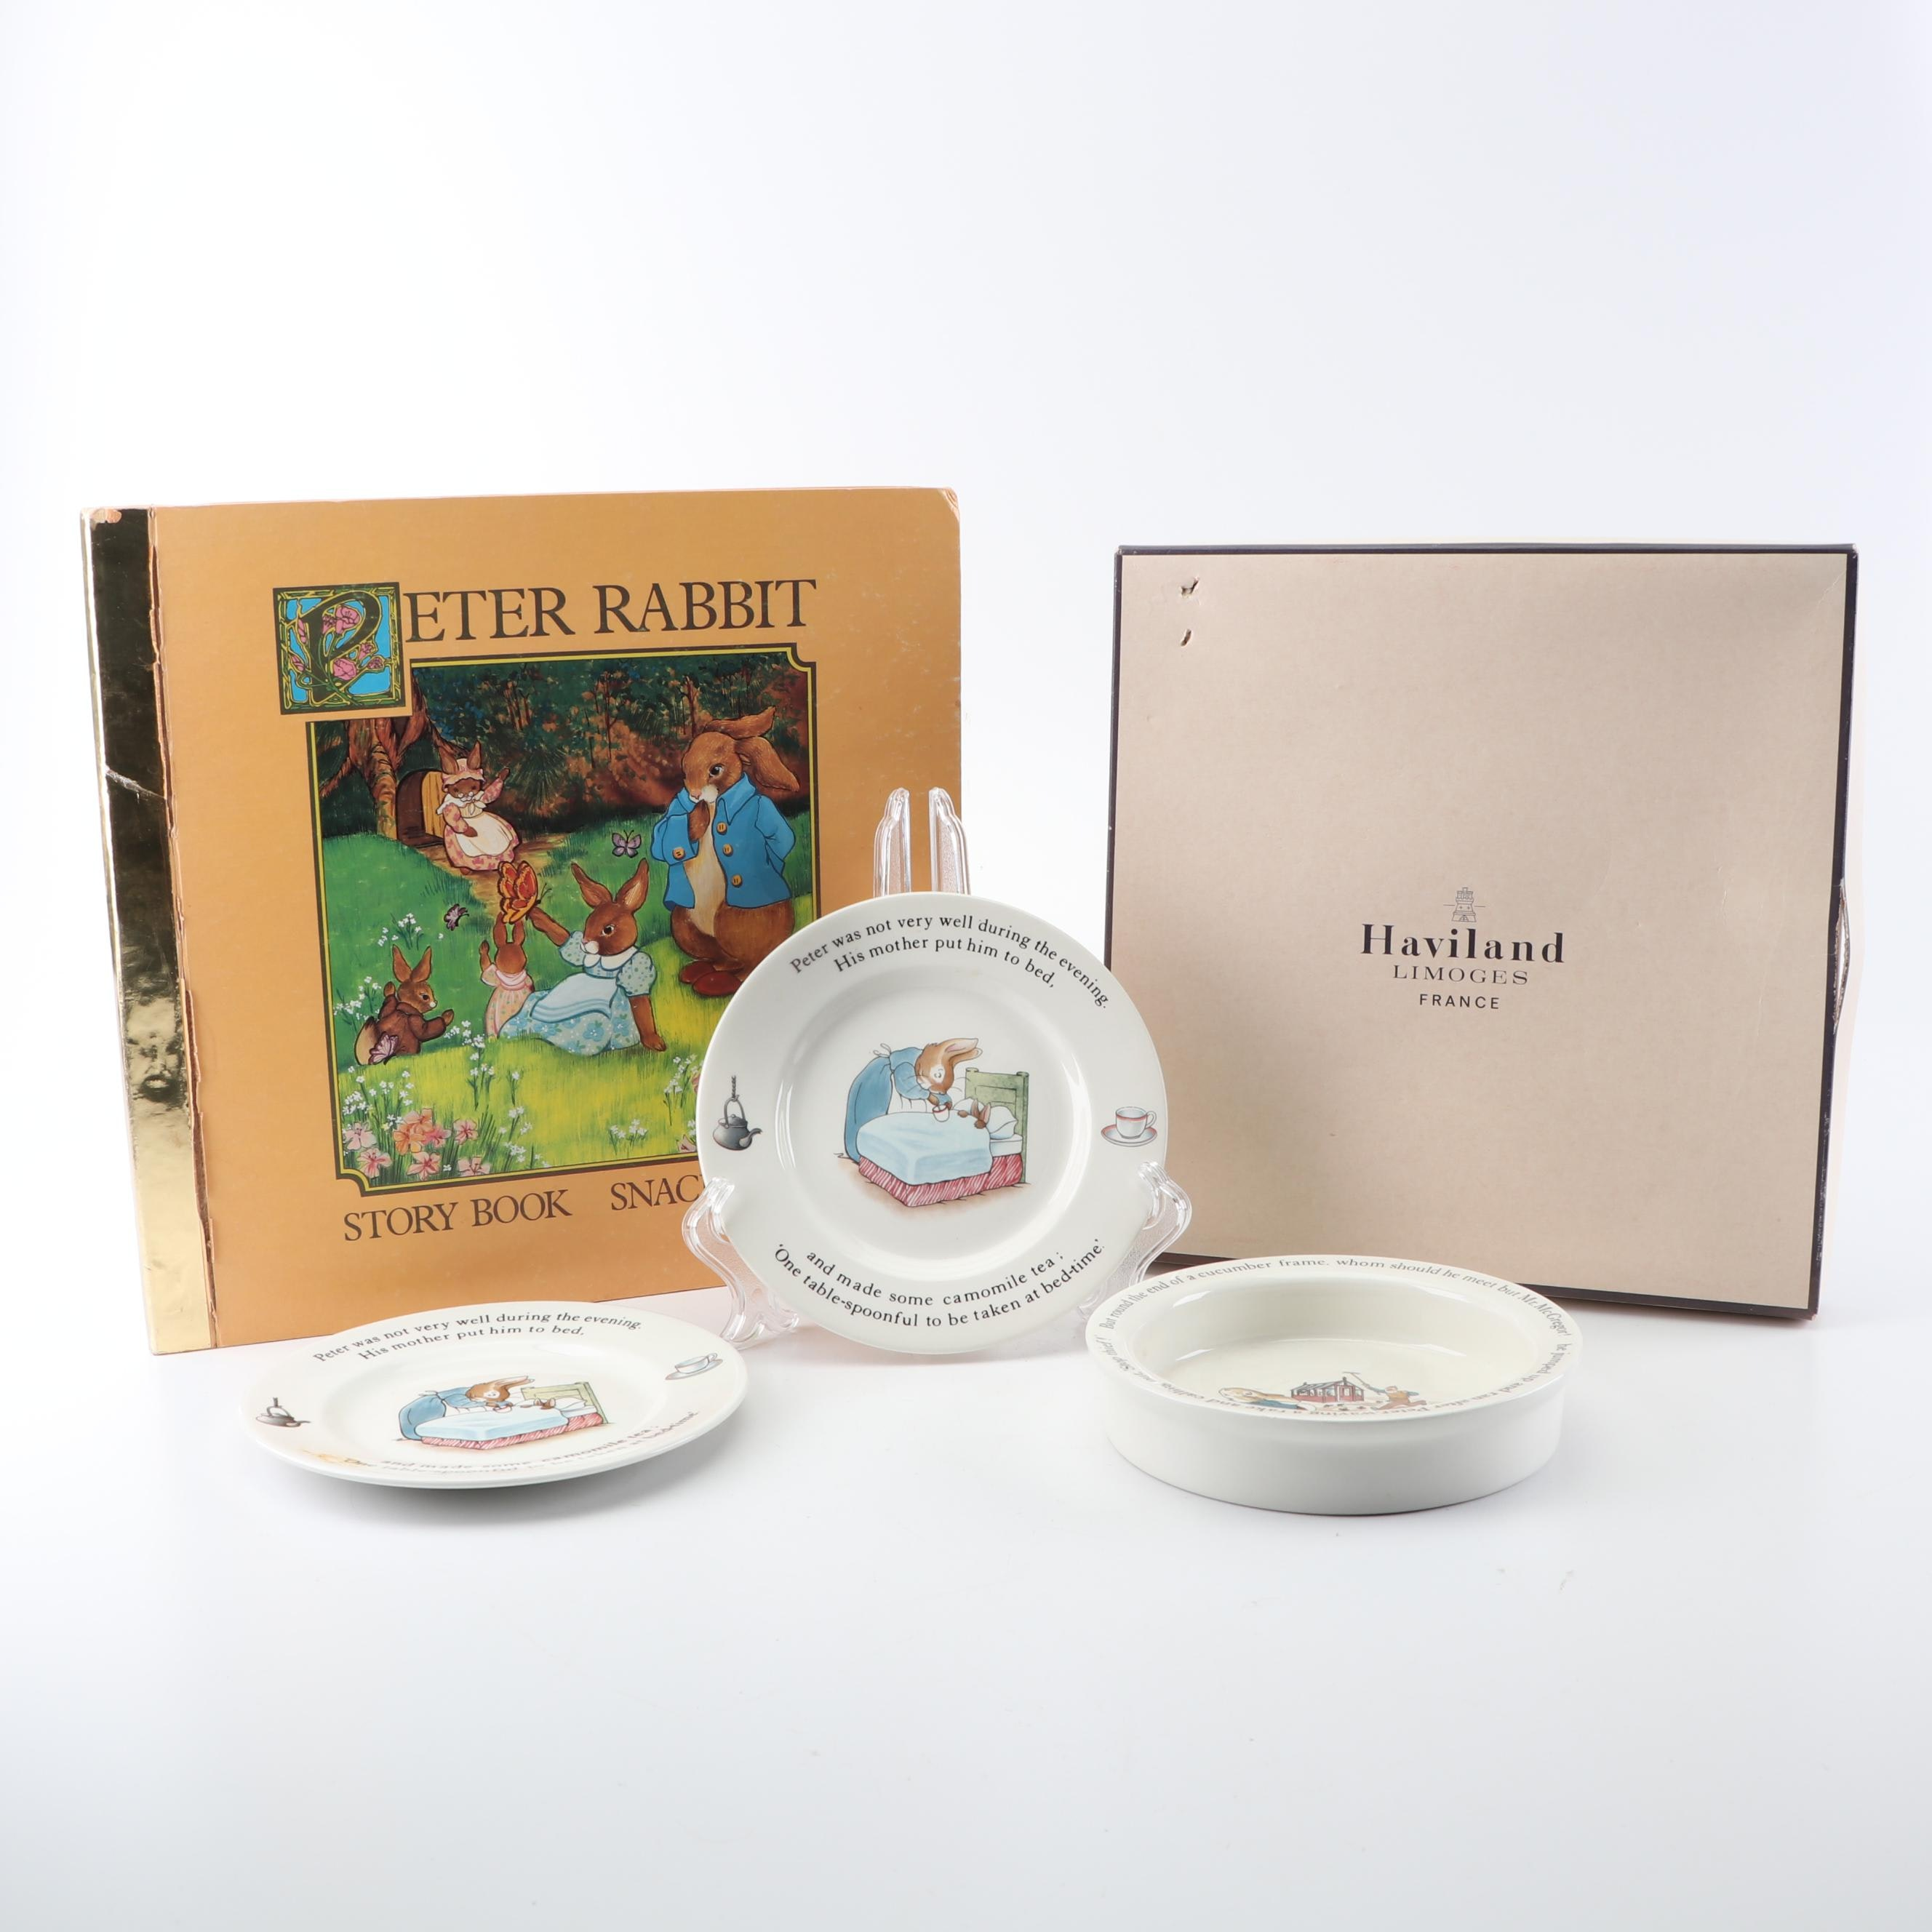 """Wedgwood """"Peter Rabbit"""" Children's Tableware with Story Book Snack Mats"""